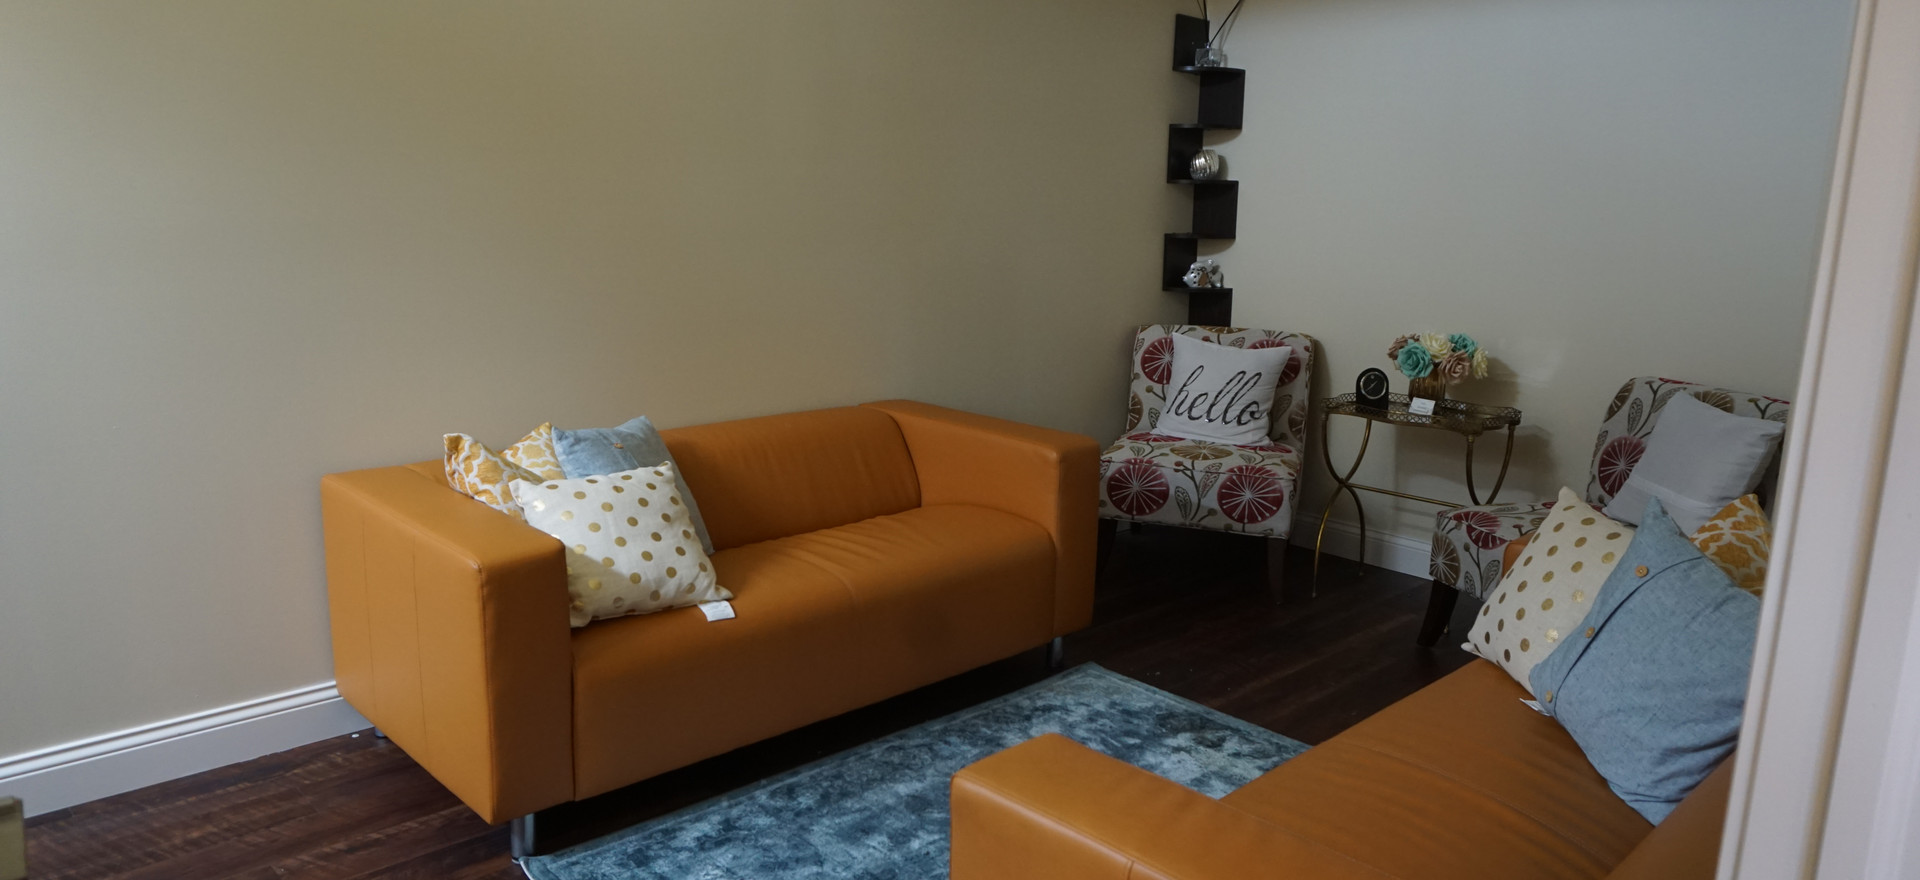 Counseling Room